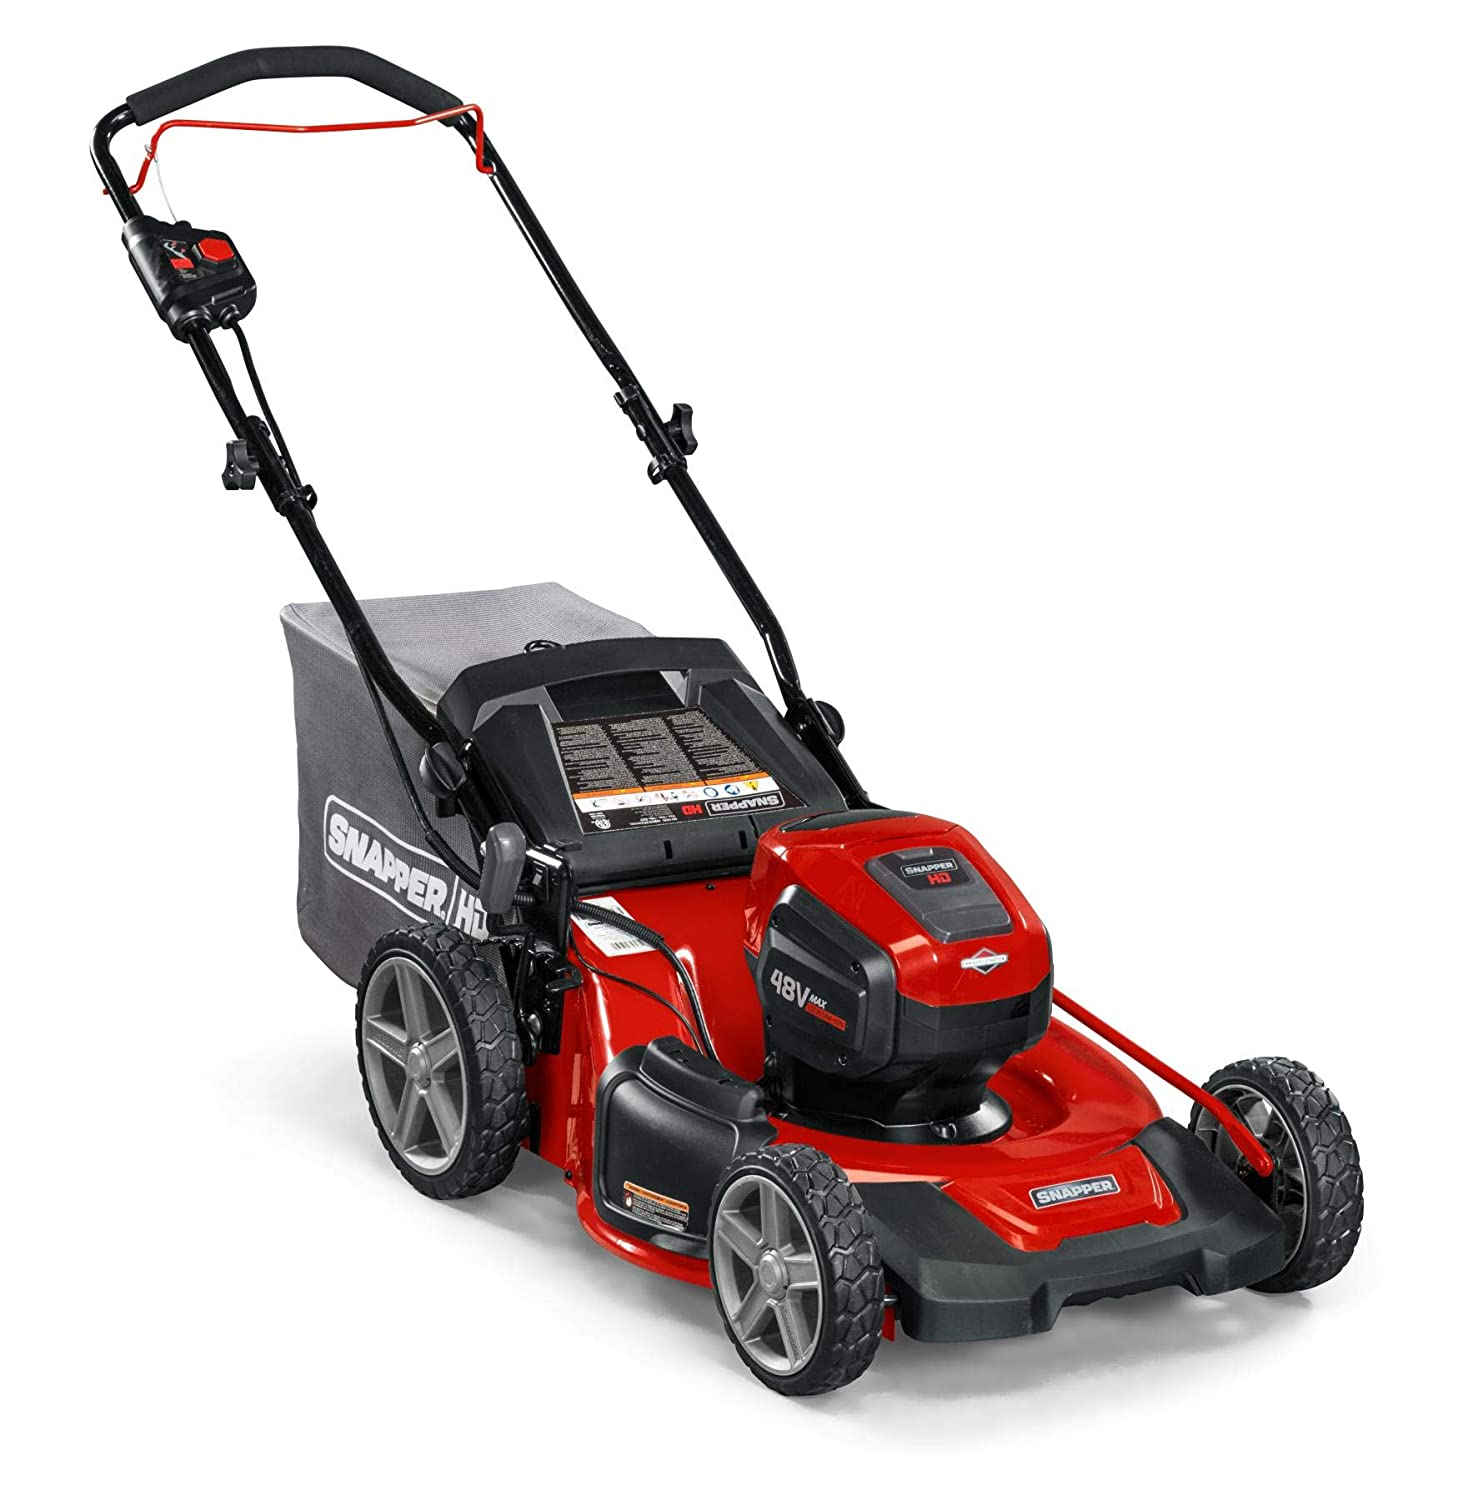 Snapper HD 48V MAX Electric Cordless Lawnmower  Snapper Lawn Mower Reviews